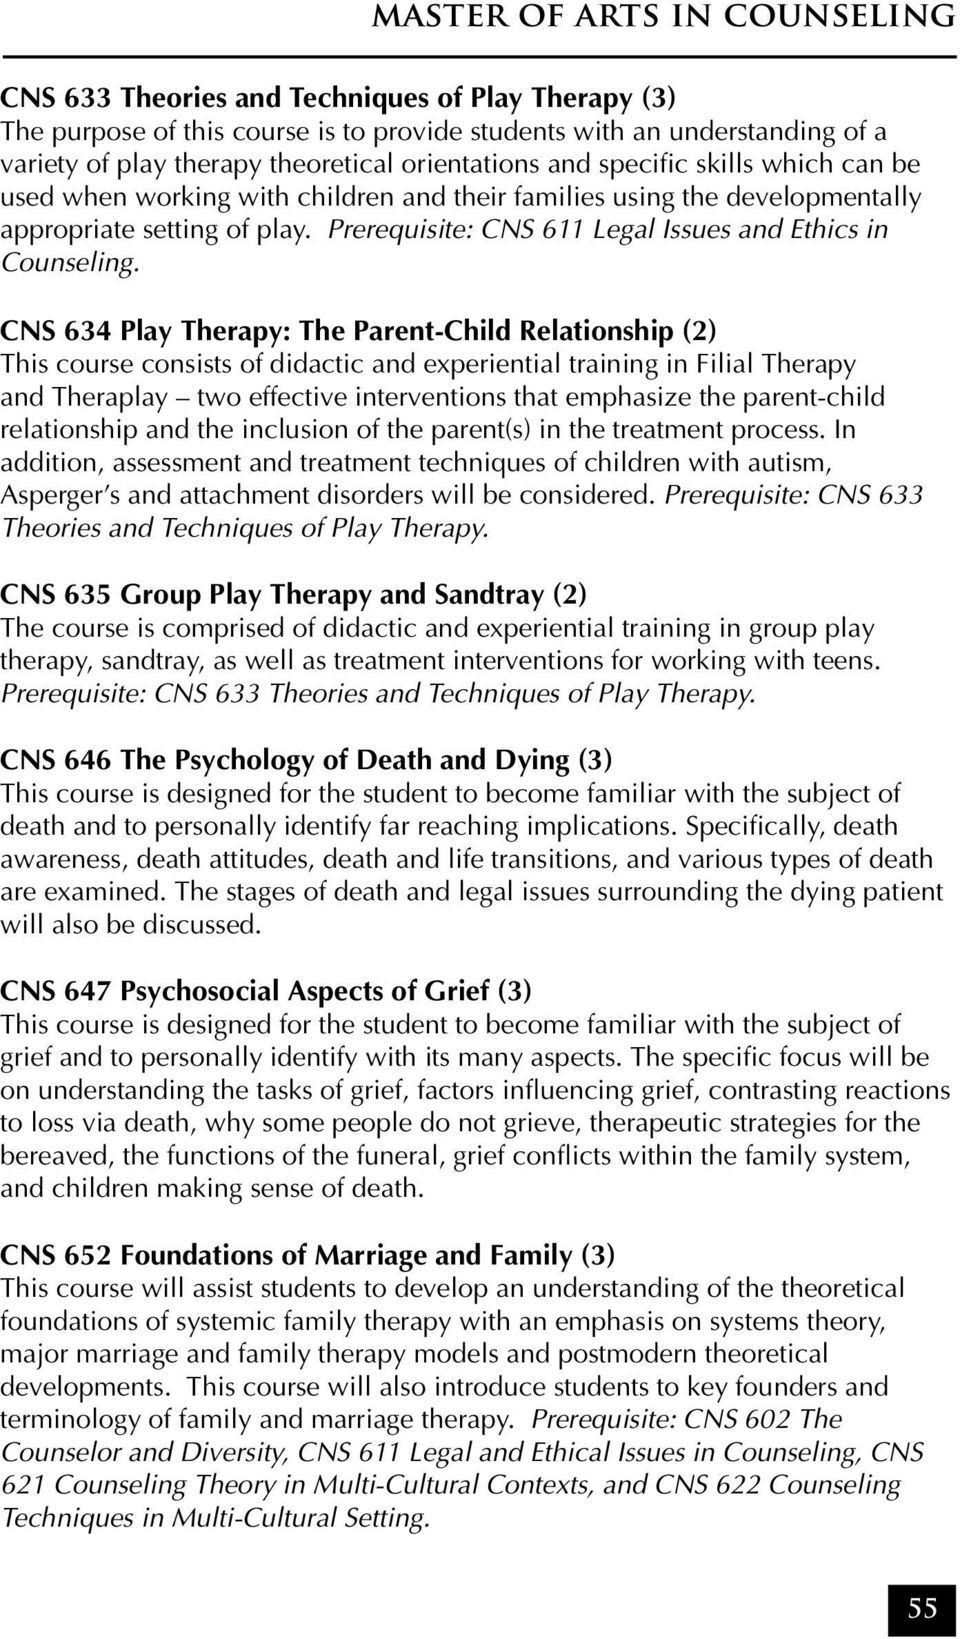 CNS 634 Play Therapy: The Parent-Child Relationship (2) This course consists of didactic and experiential training in Filial Therapy relationship and the inclusion of the parent(s) in the treatment